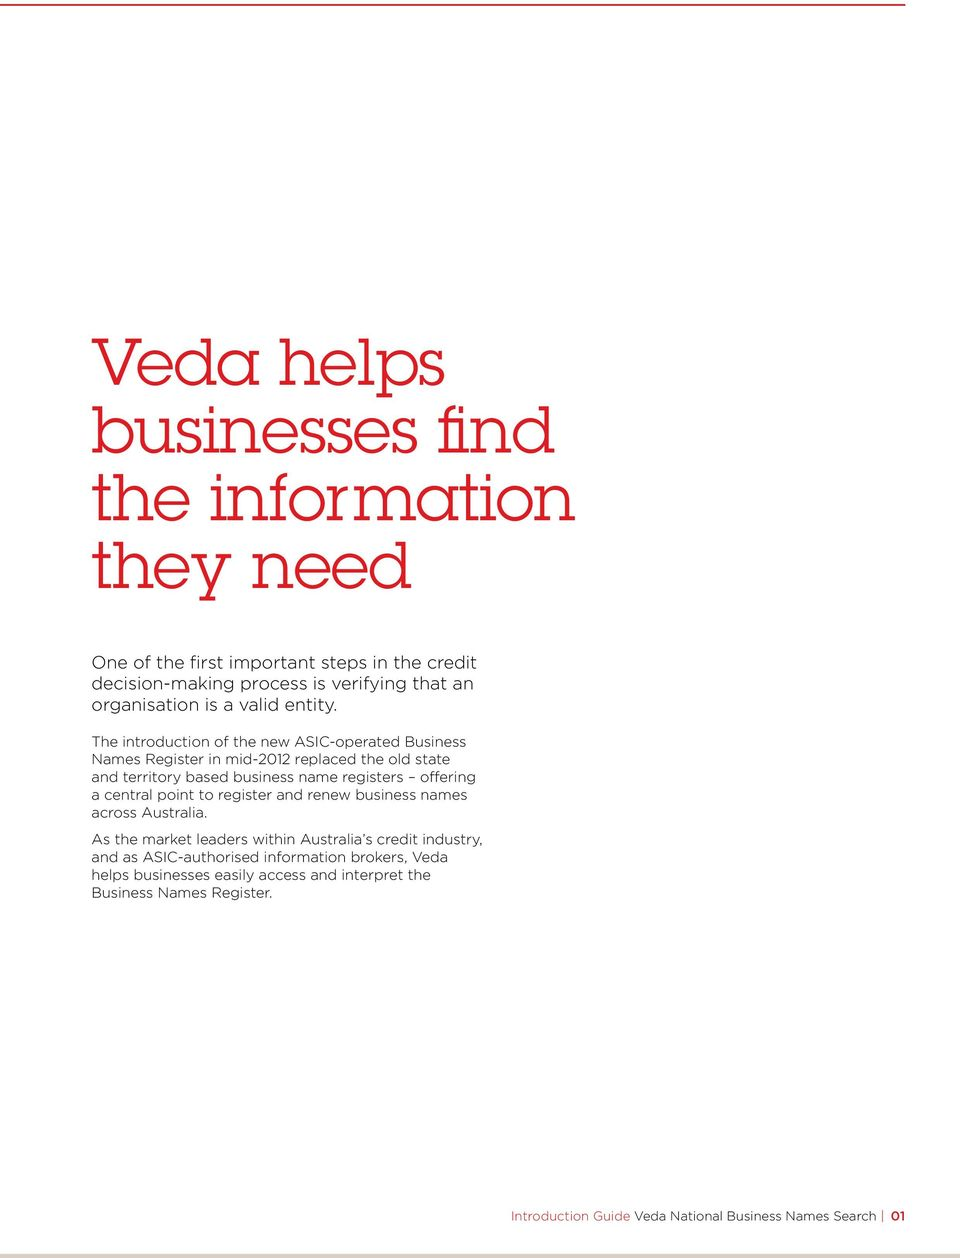 Introduction Guide  Simple and quick verification with Veda